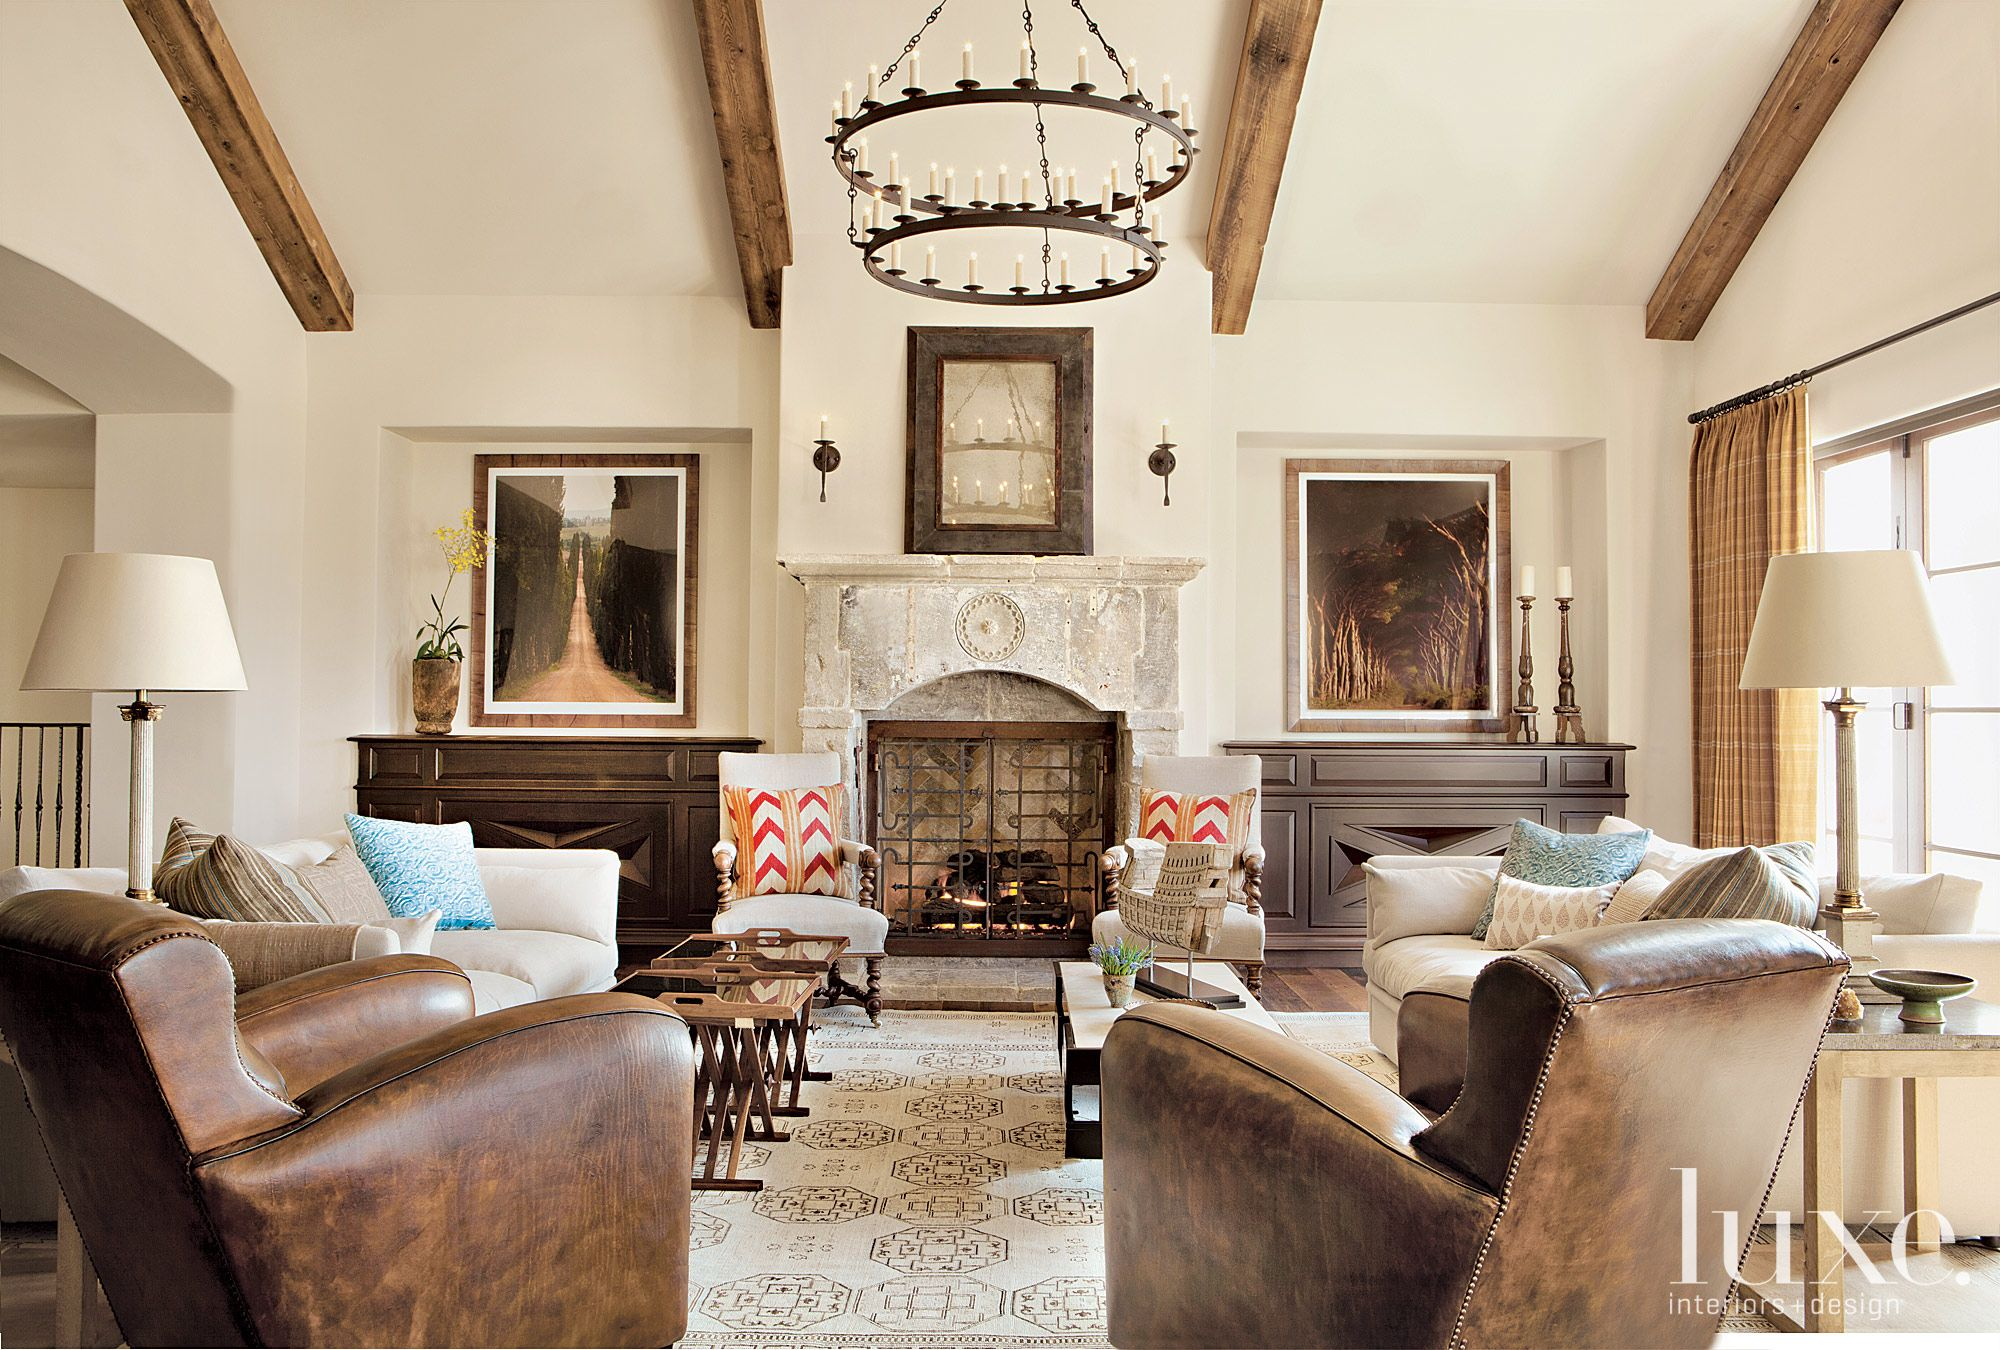 Mediterranean Cream Living Room with Antique Fireplace